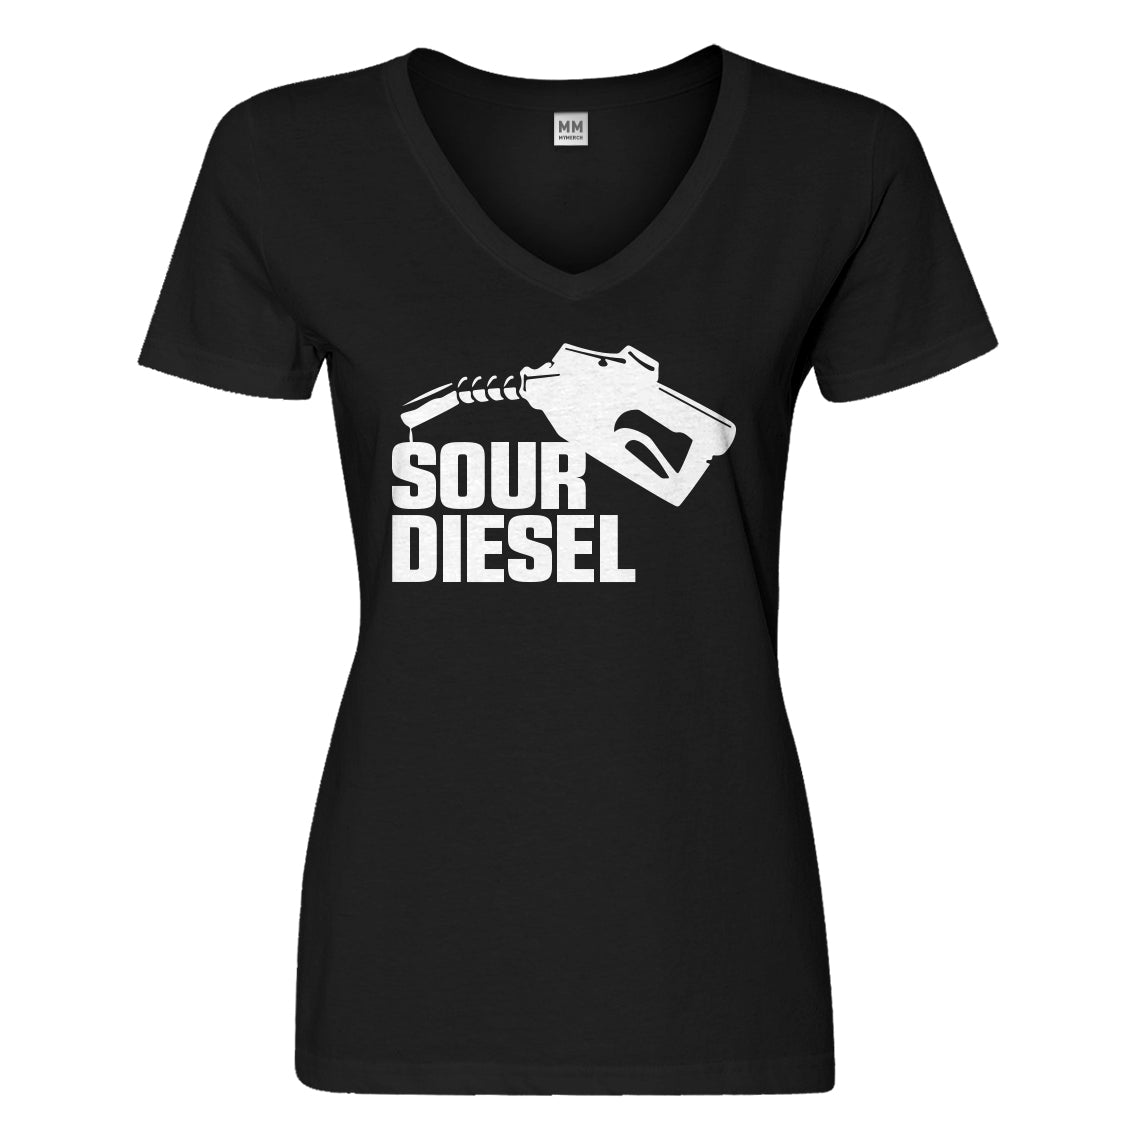 Womens Sour Diesel Vneck T-shirt